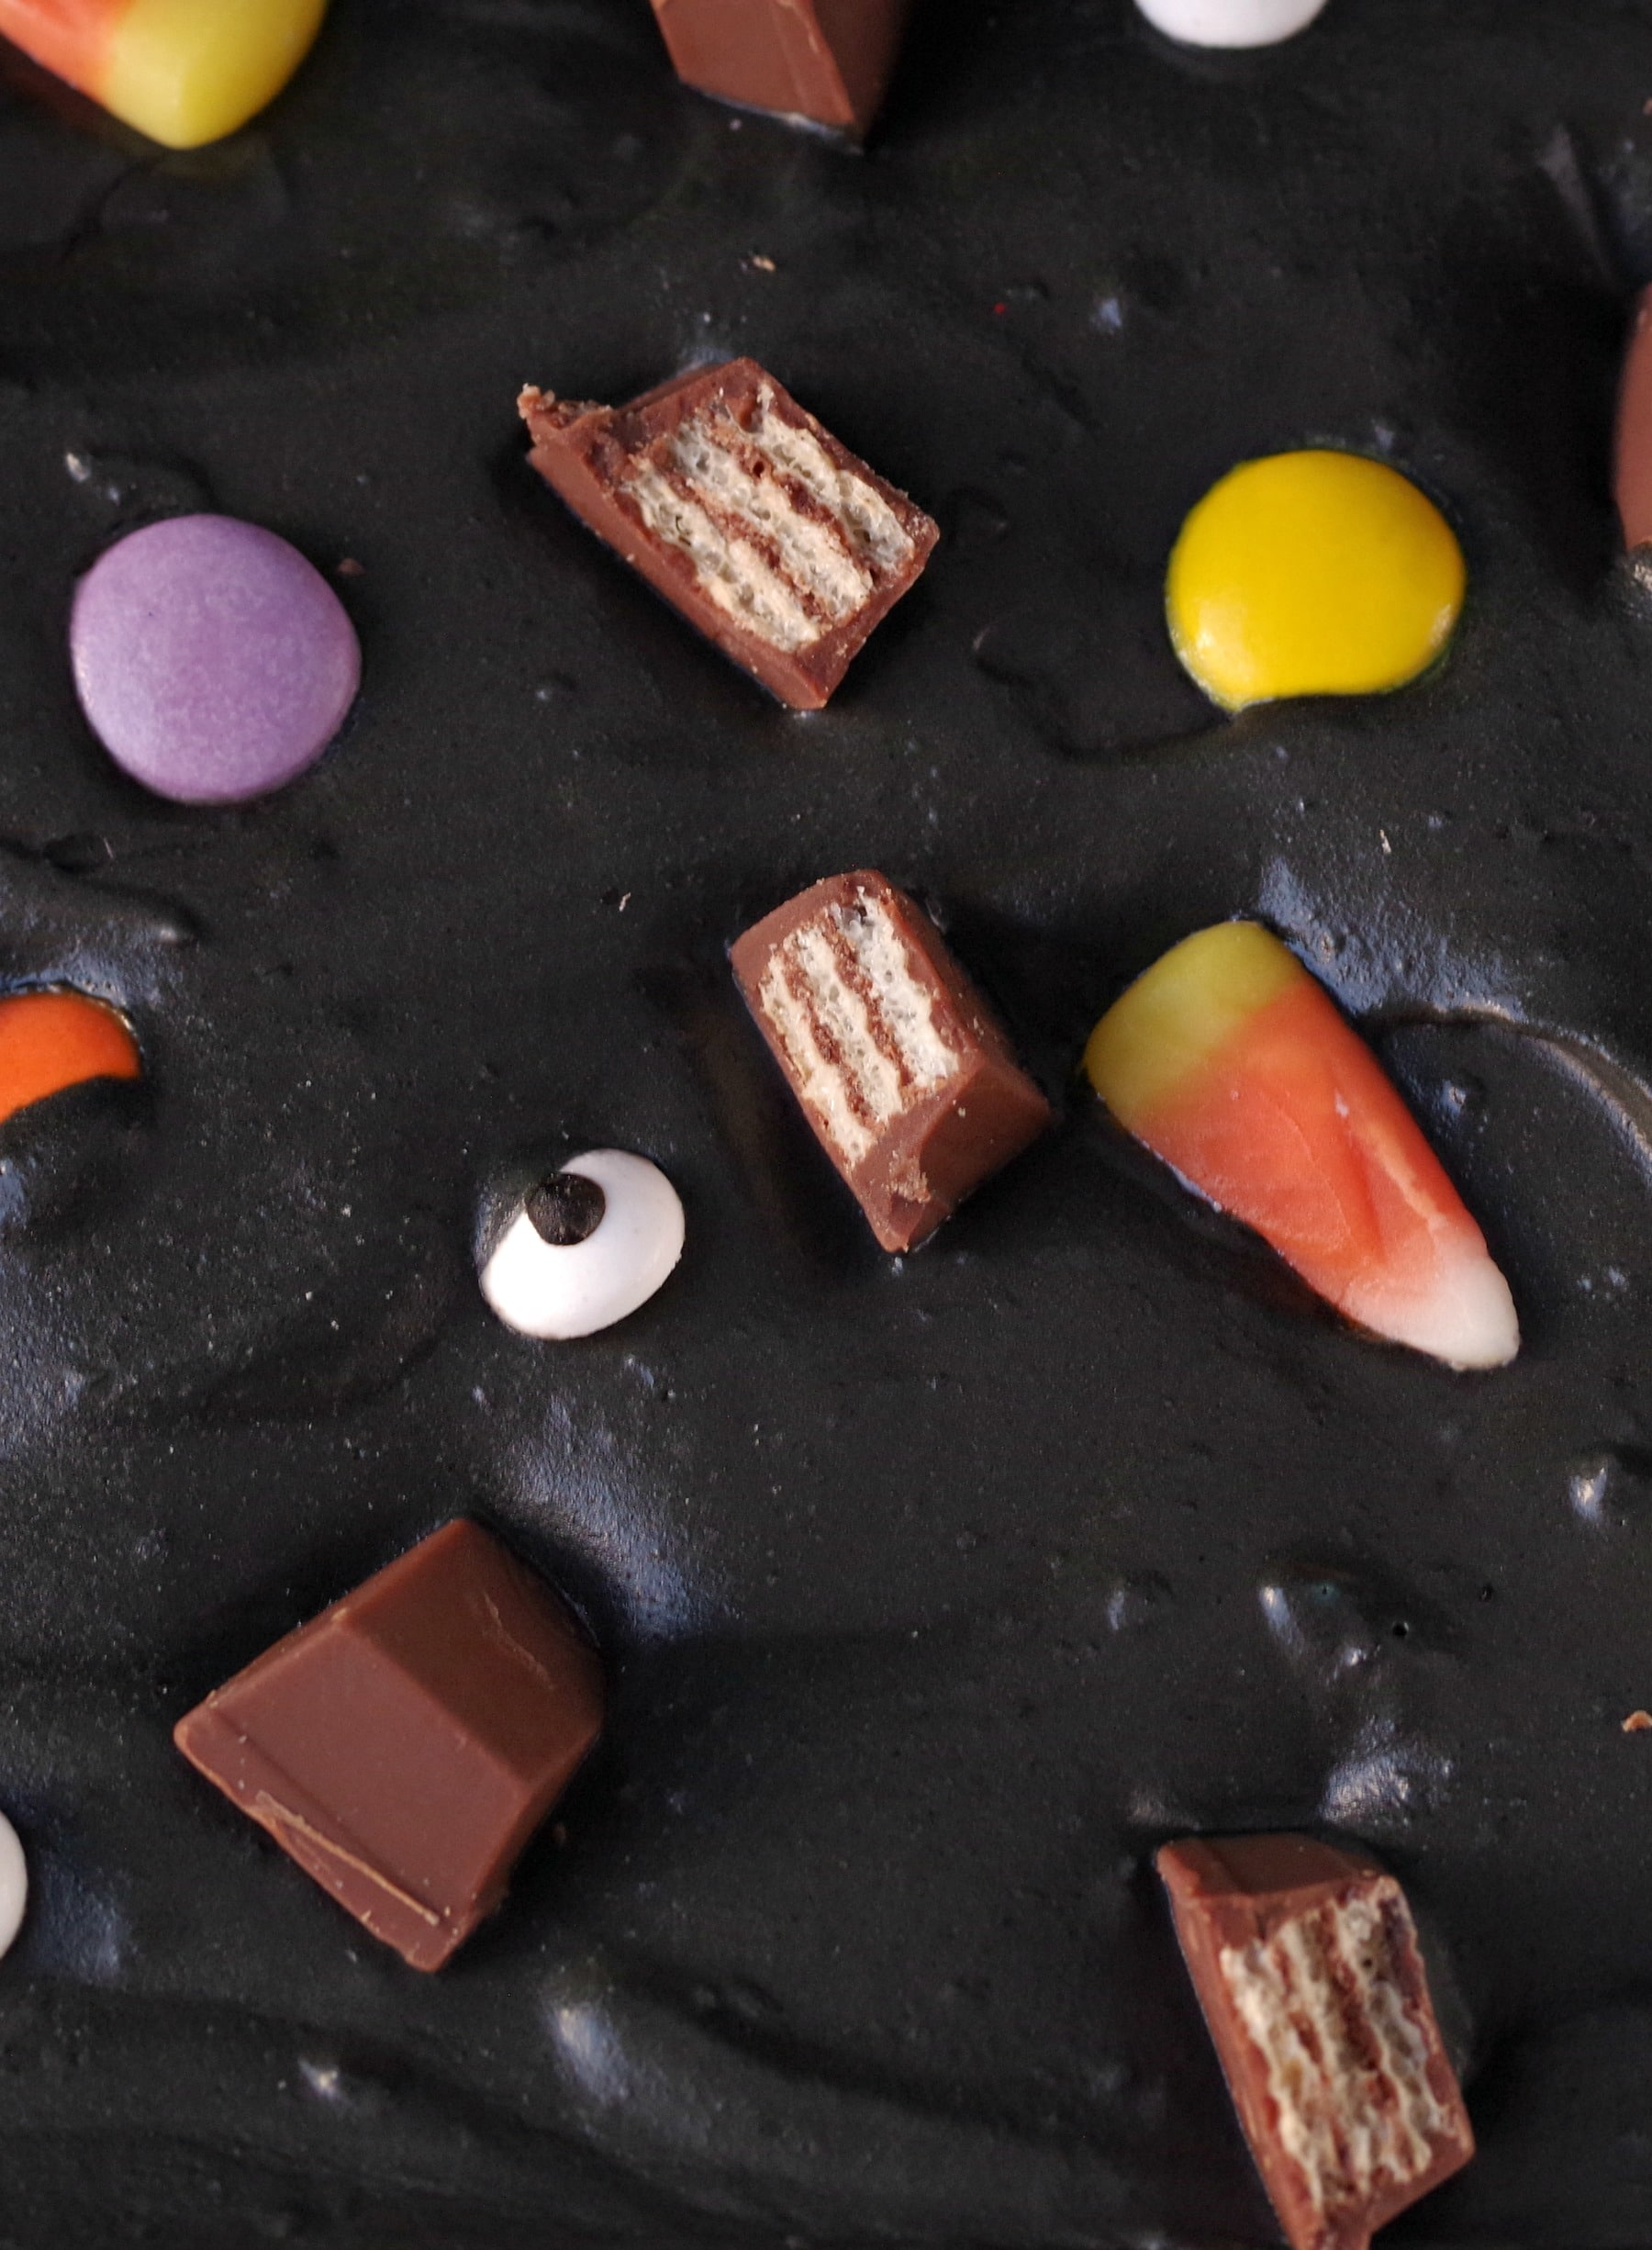 Boo Batter ice cream close up. It's a black ice cream with candy eyes, candy corn, chocolate bars and smarties.